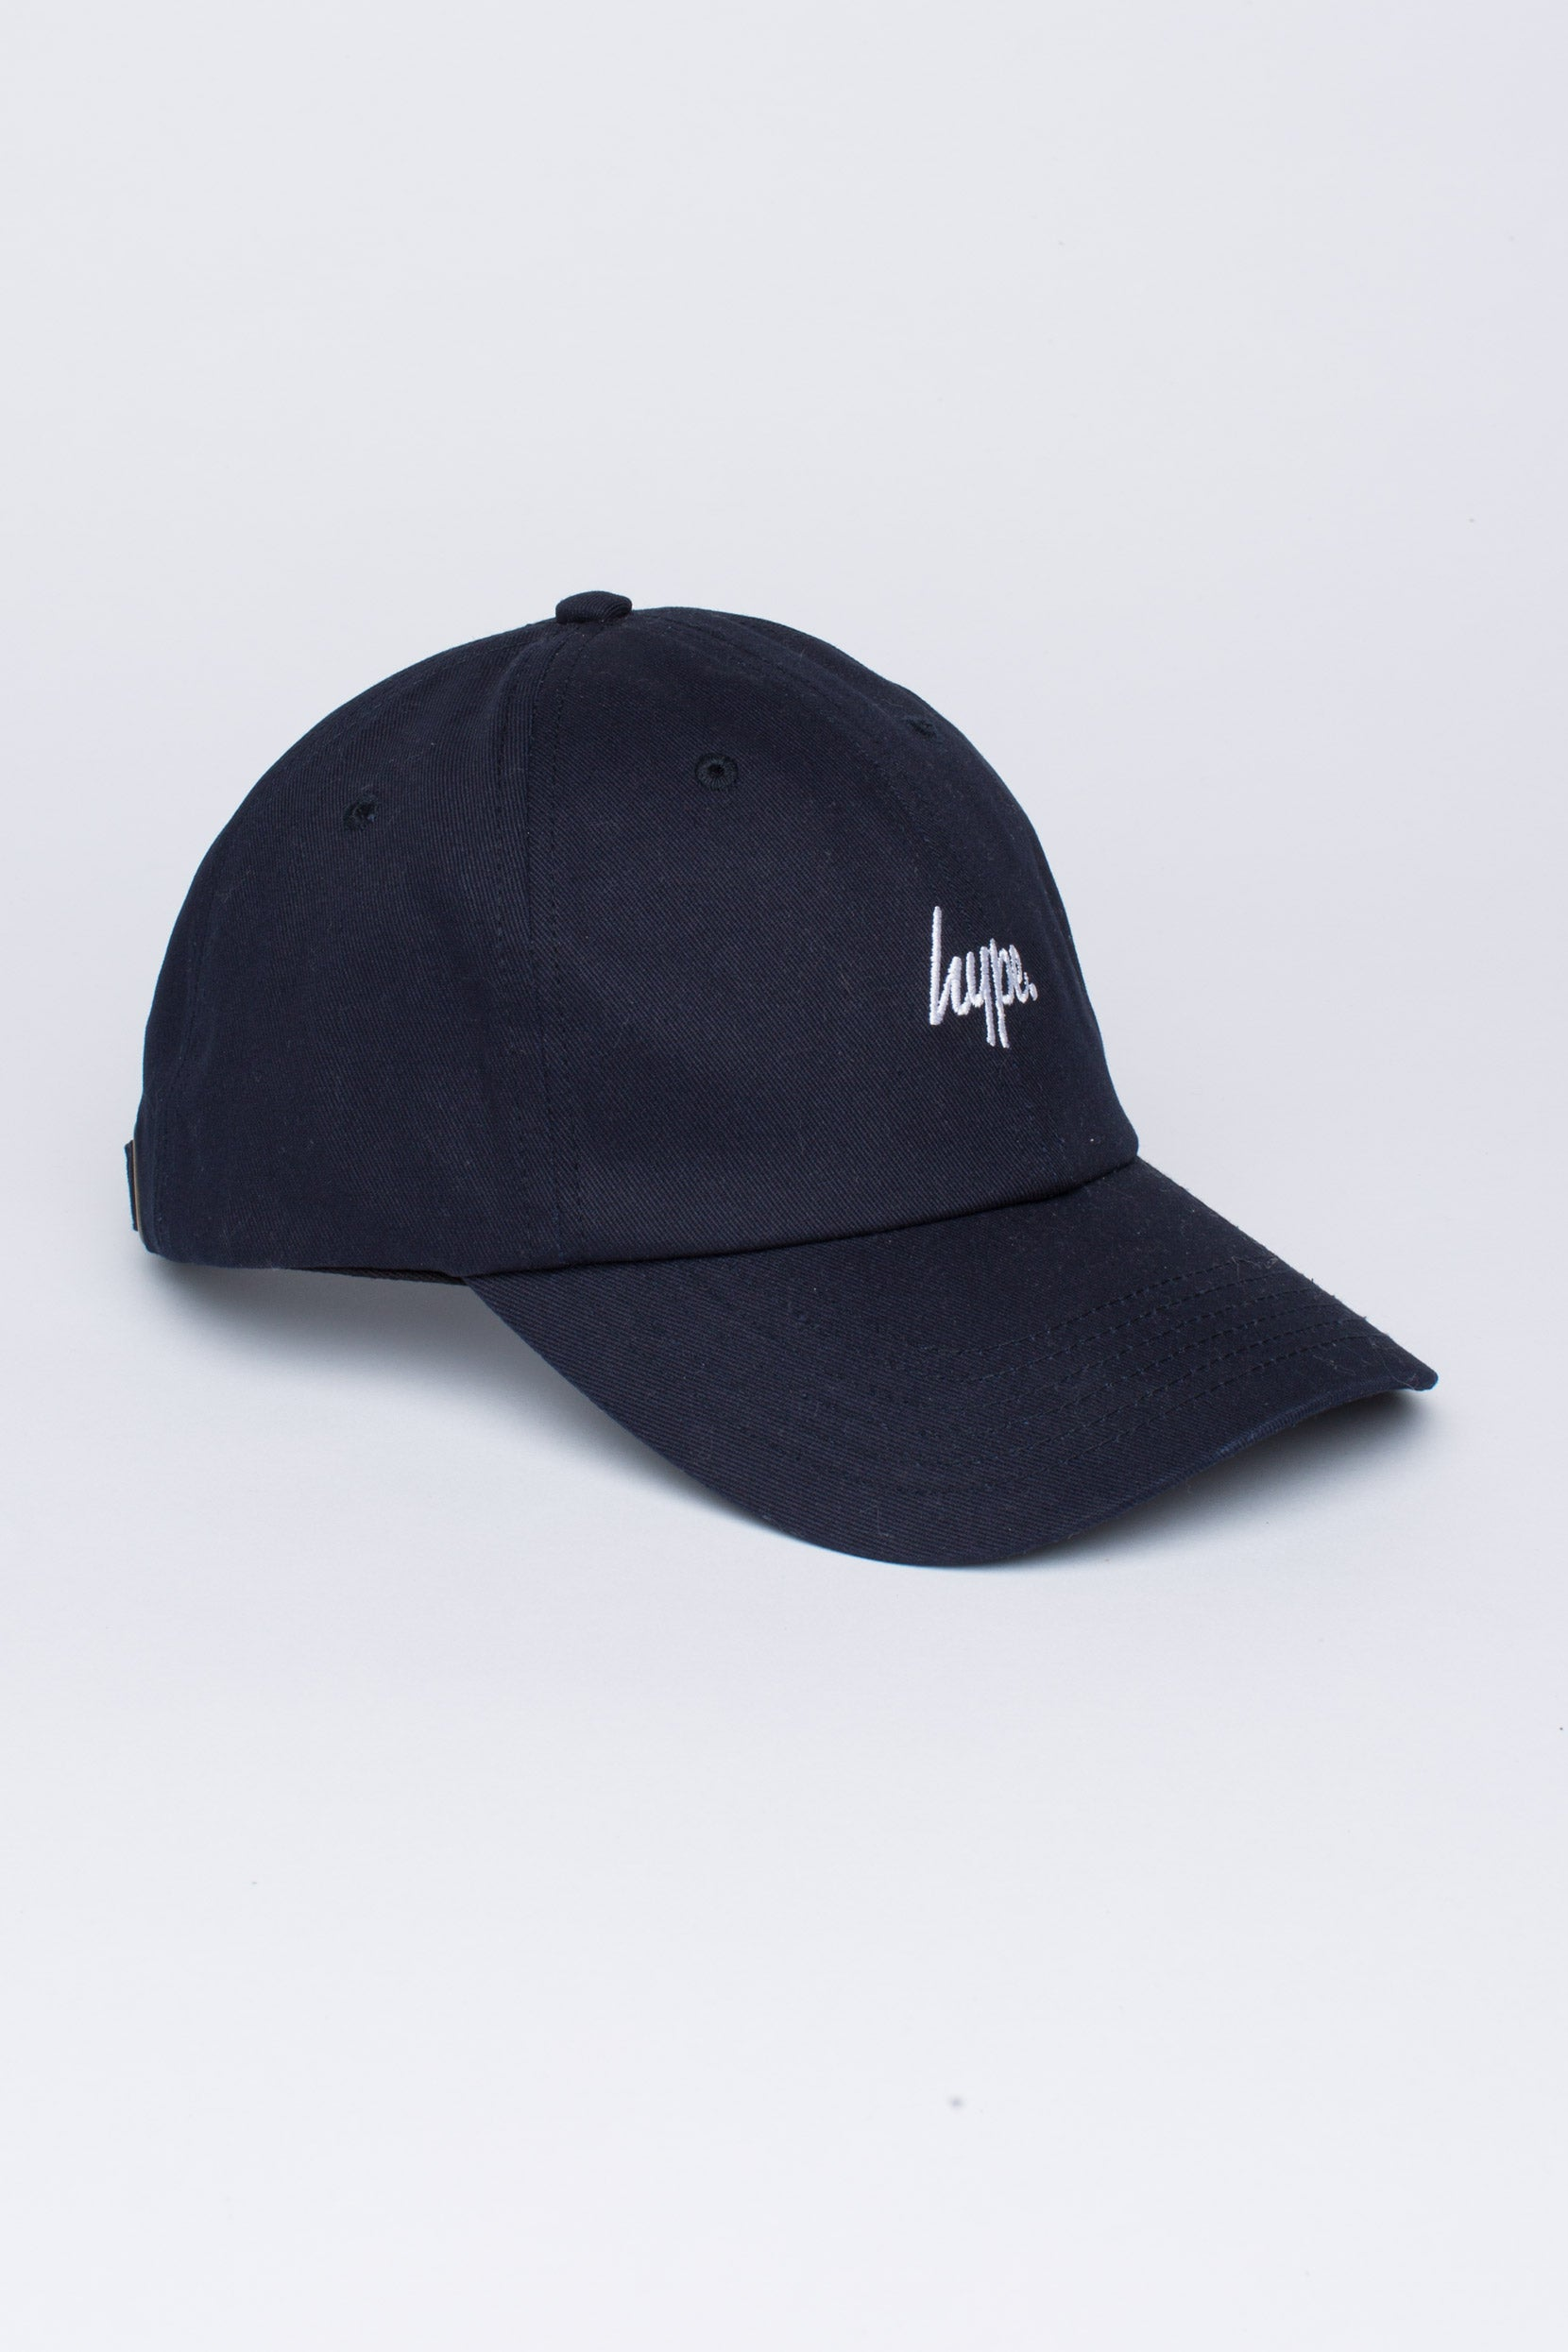 3c655117 HYPE BLACK SCRIPT 5 PANEL HAT – JustHype ltd